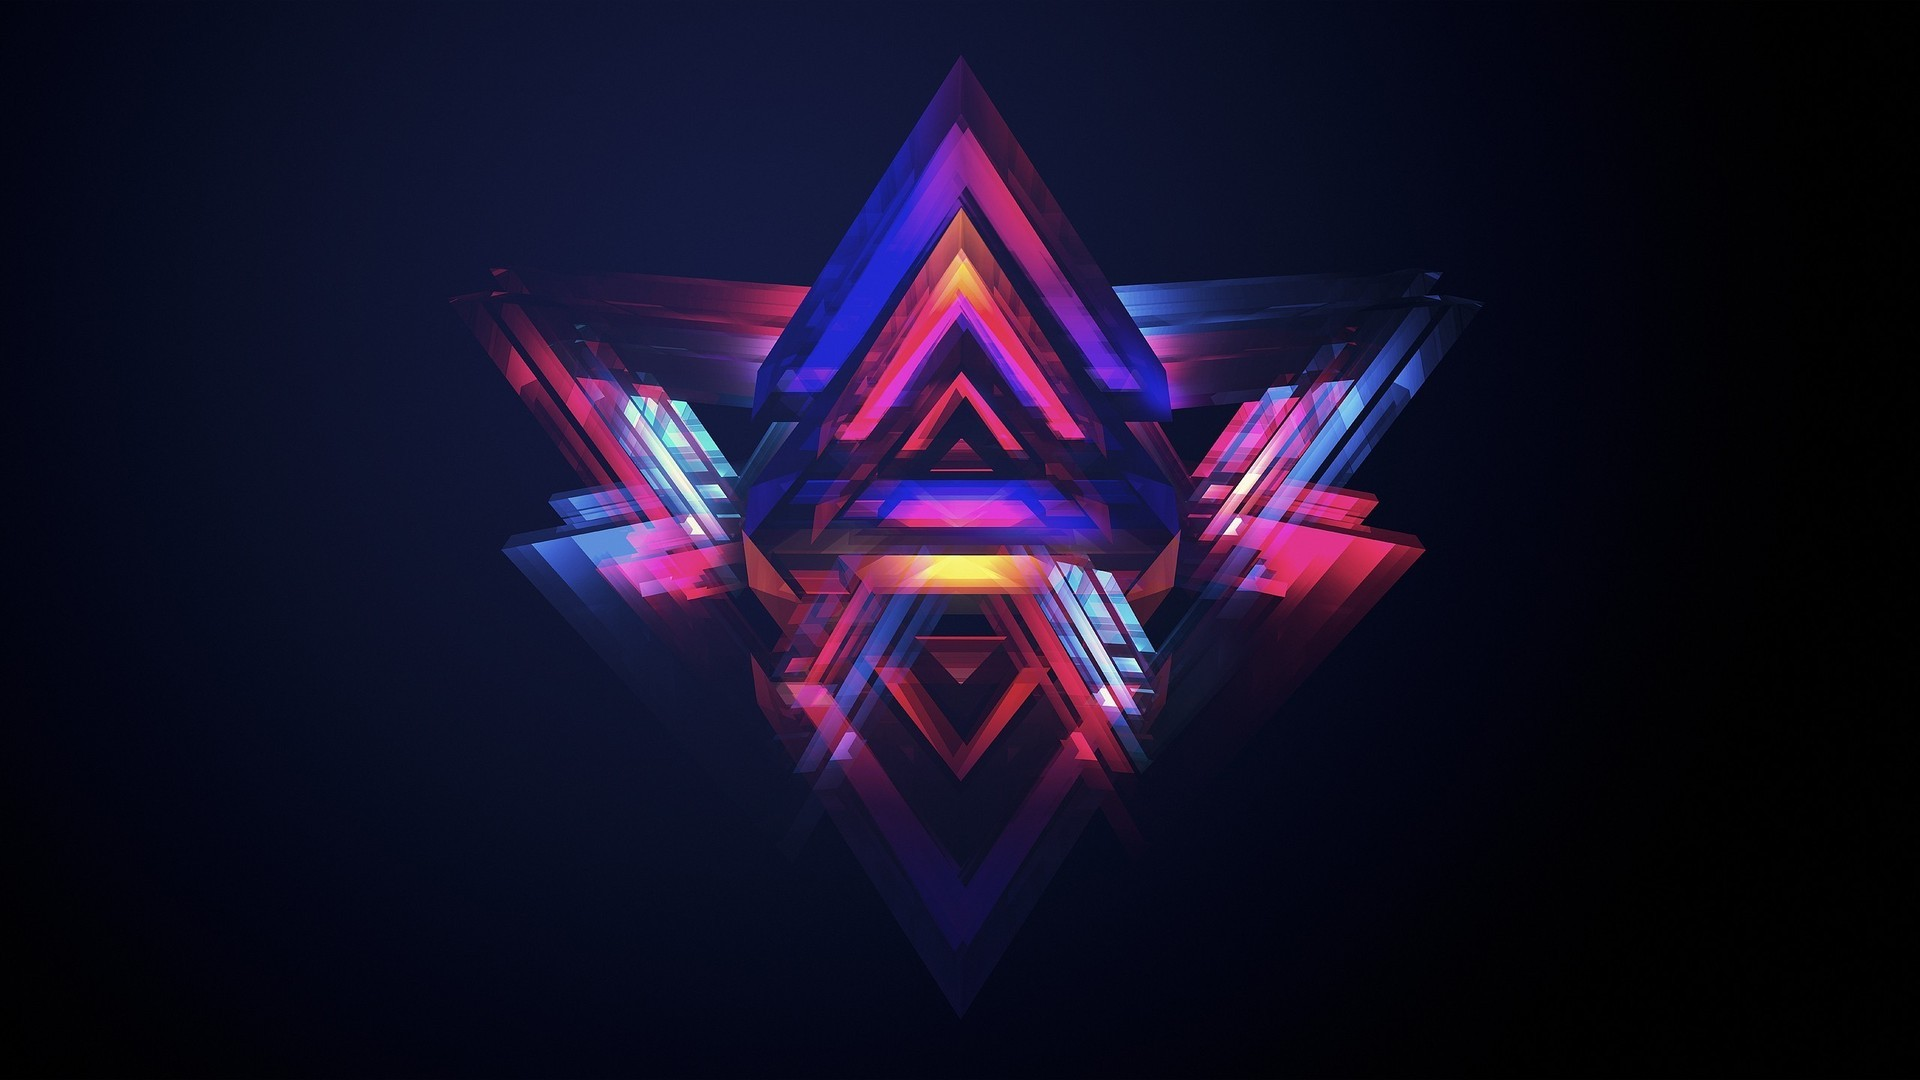 1920x1080 neon pyramids abstract hd wallpaper 1920×1080 3371. ««